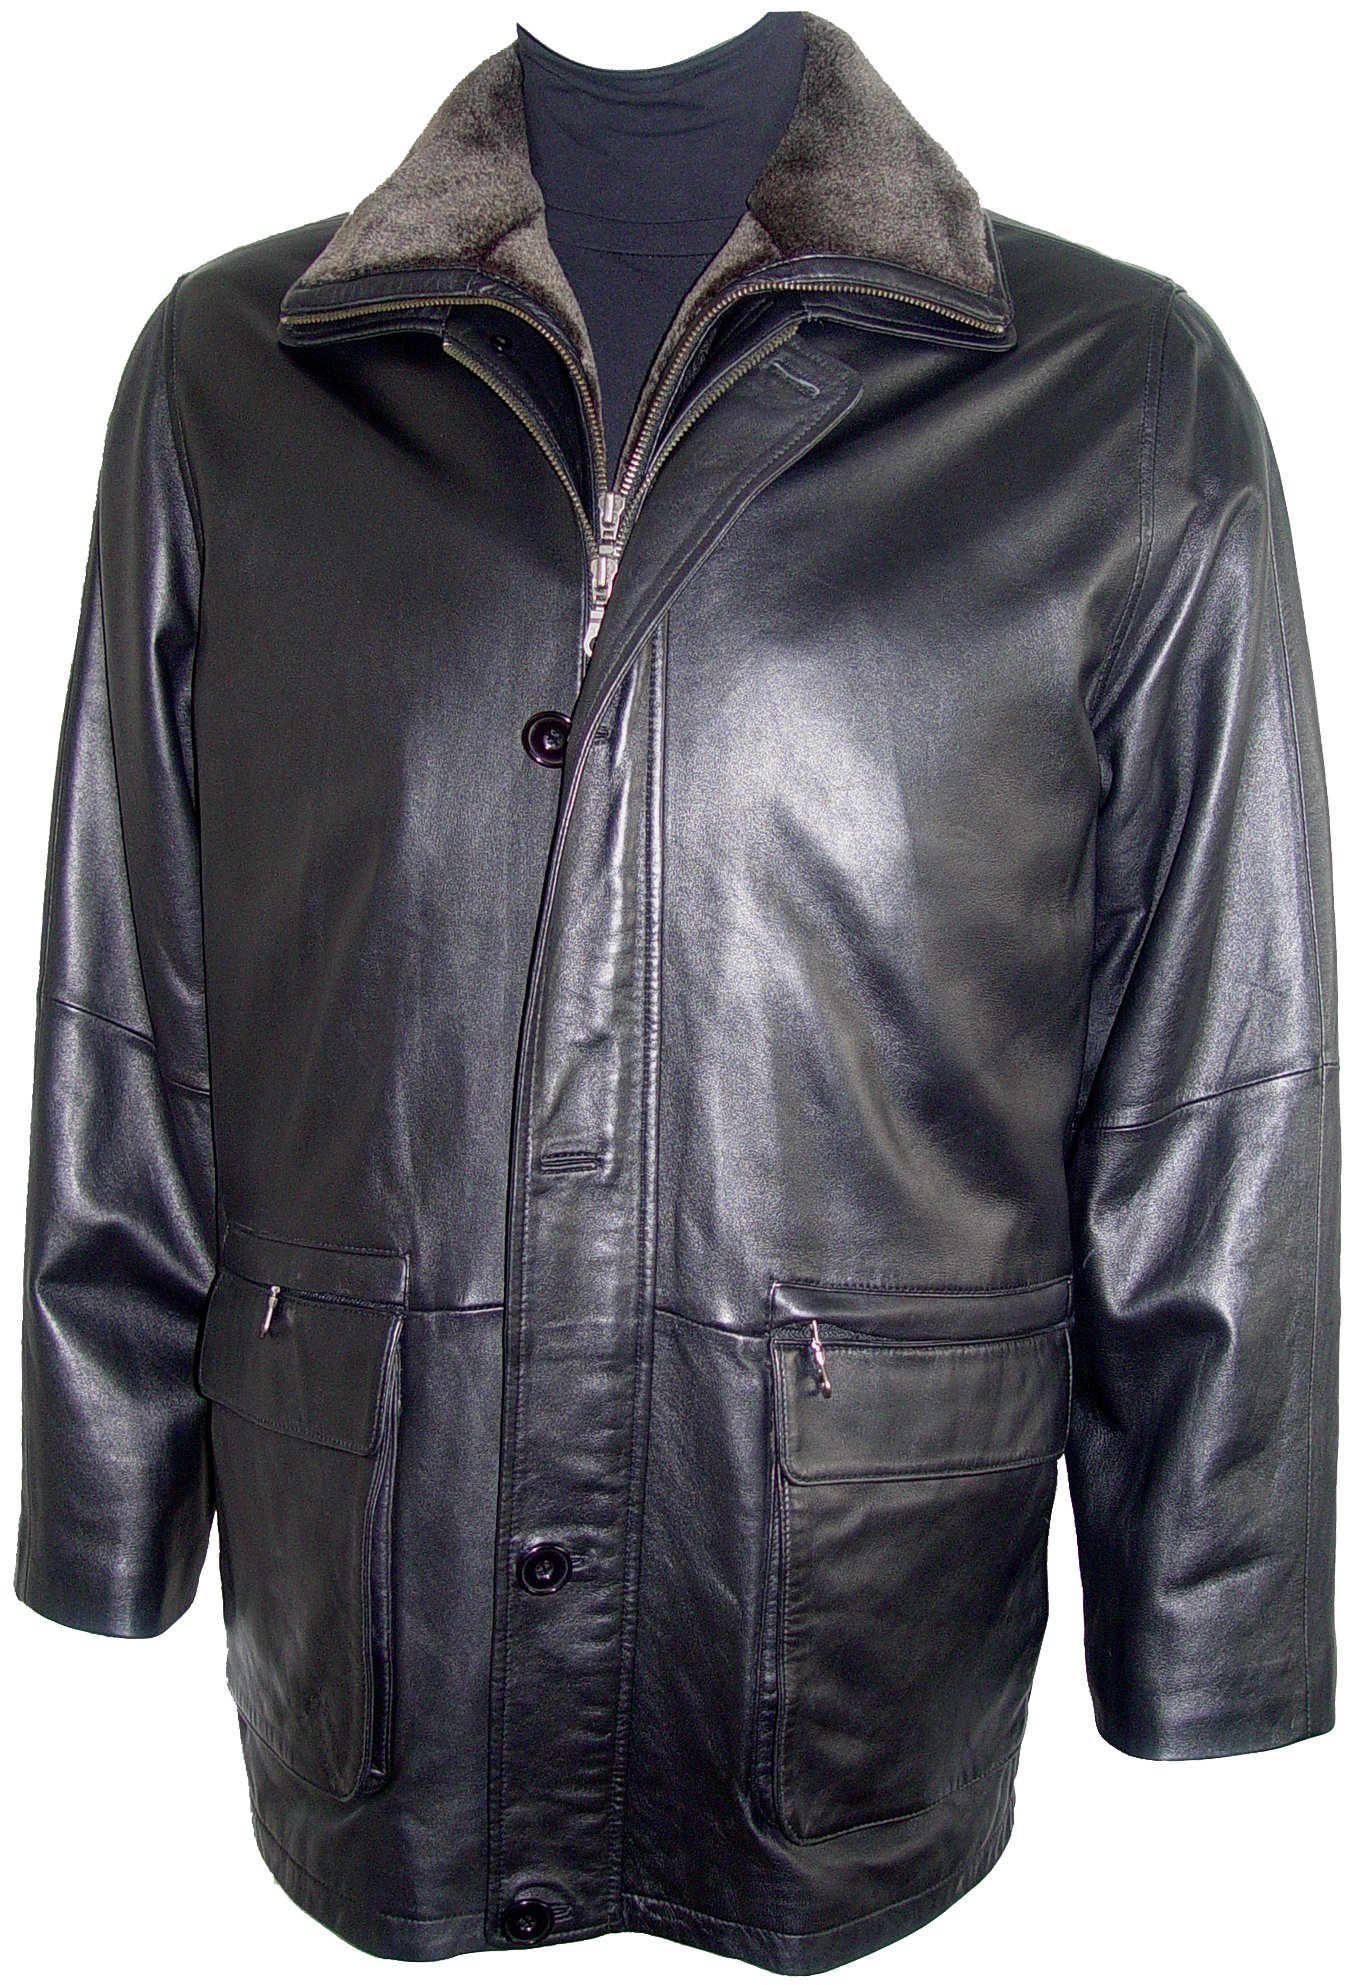 Johnnyblue Men 2002 Simply Tall Big All Size Lamb Leather Barn Coat by Johnnyblue (Image #8)